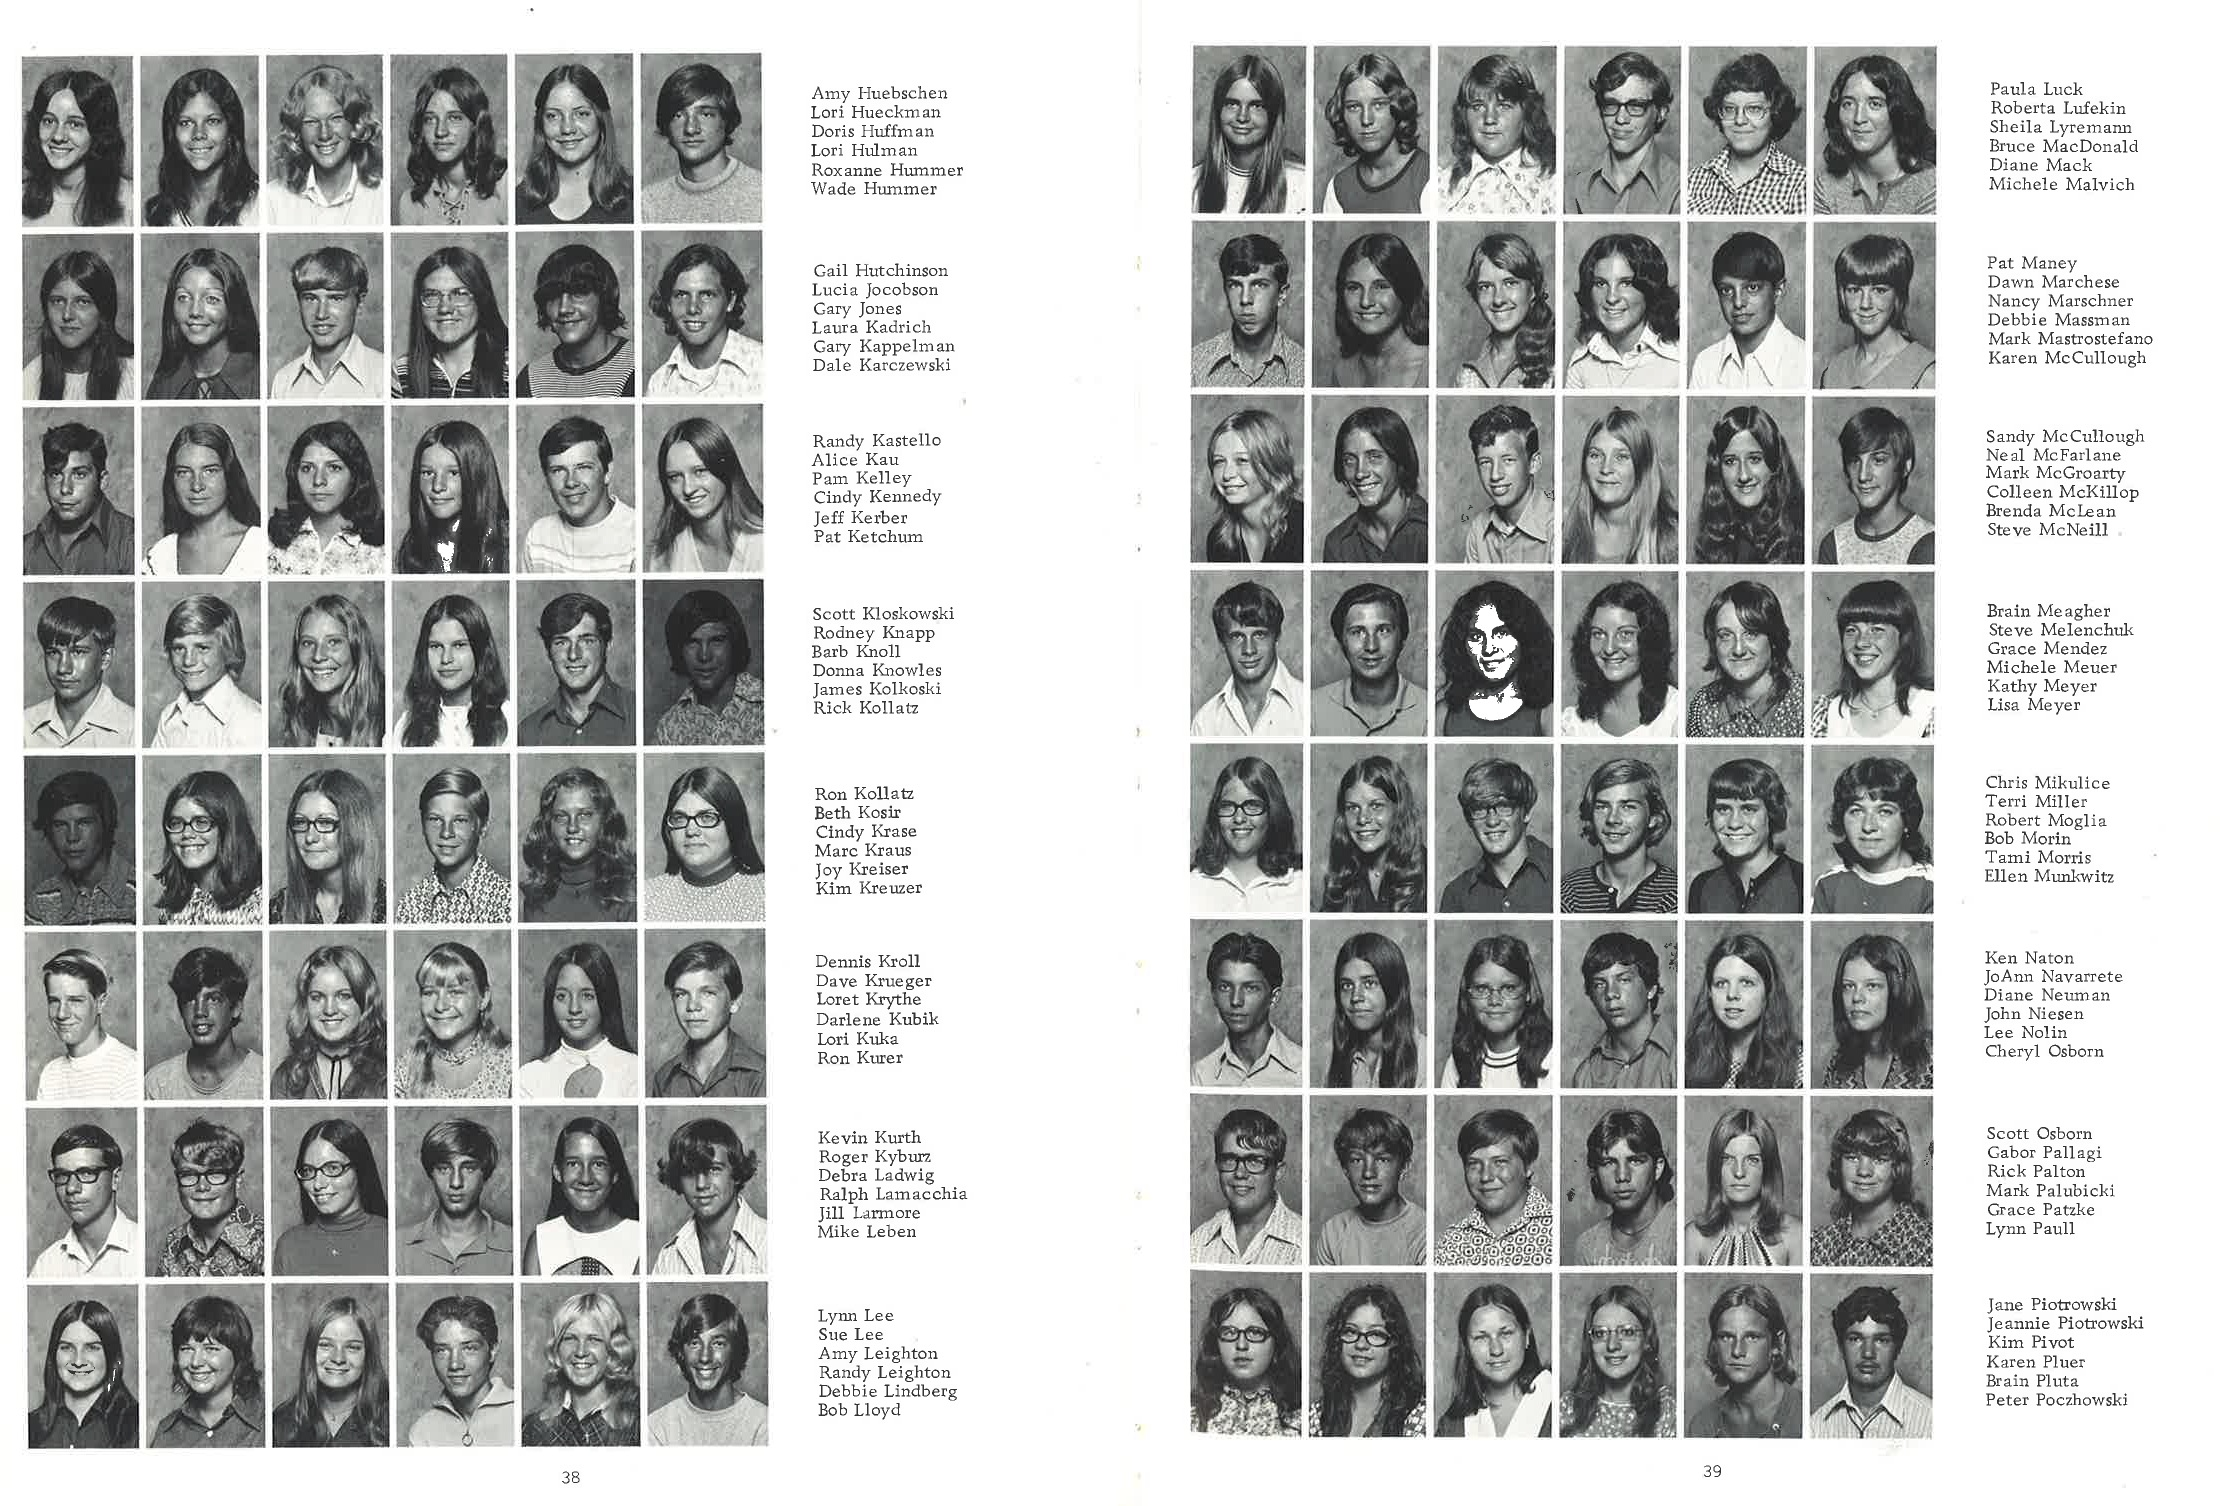 1973_Yearbook_38-39.jpg